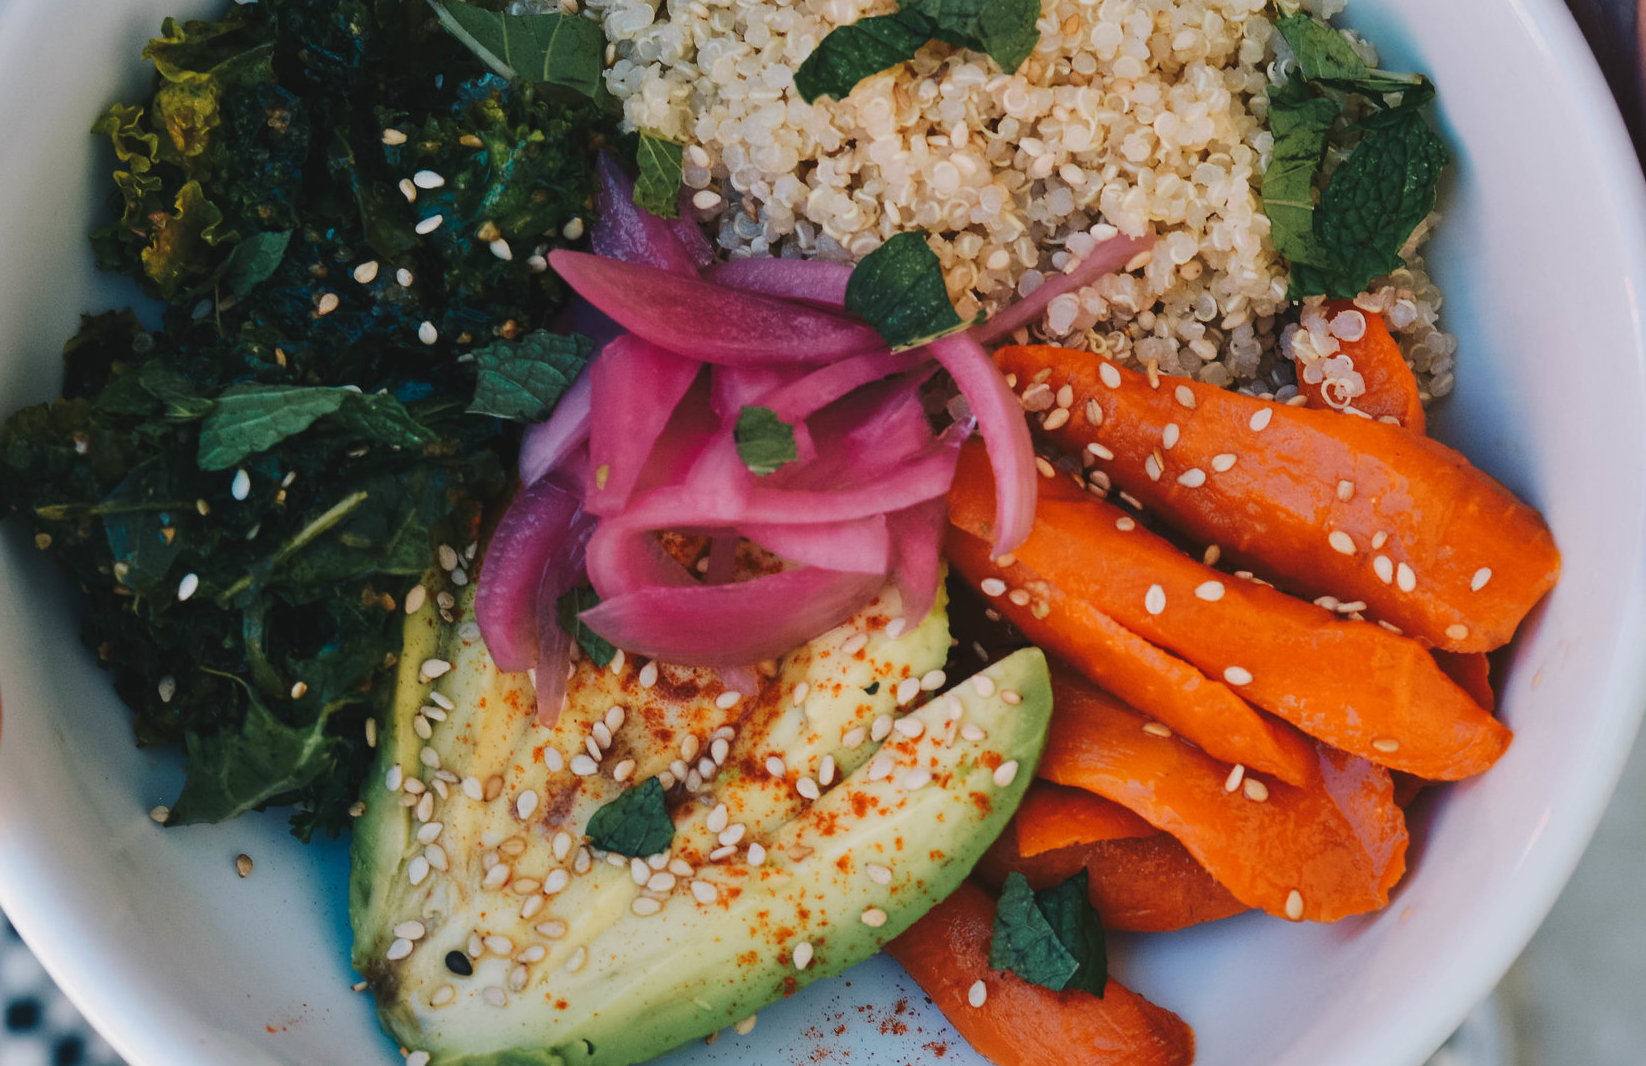 Healthy Lunch bowl with kale, carrots, quinoa from OTL cafe at the Design District